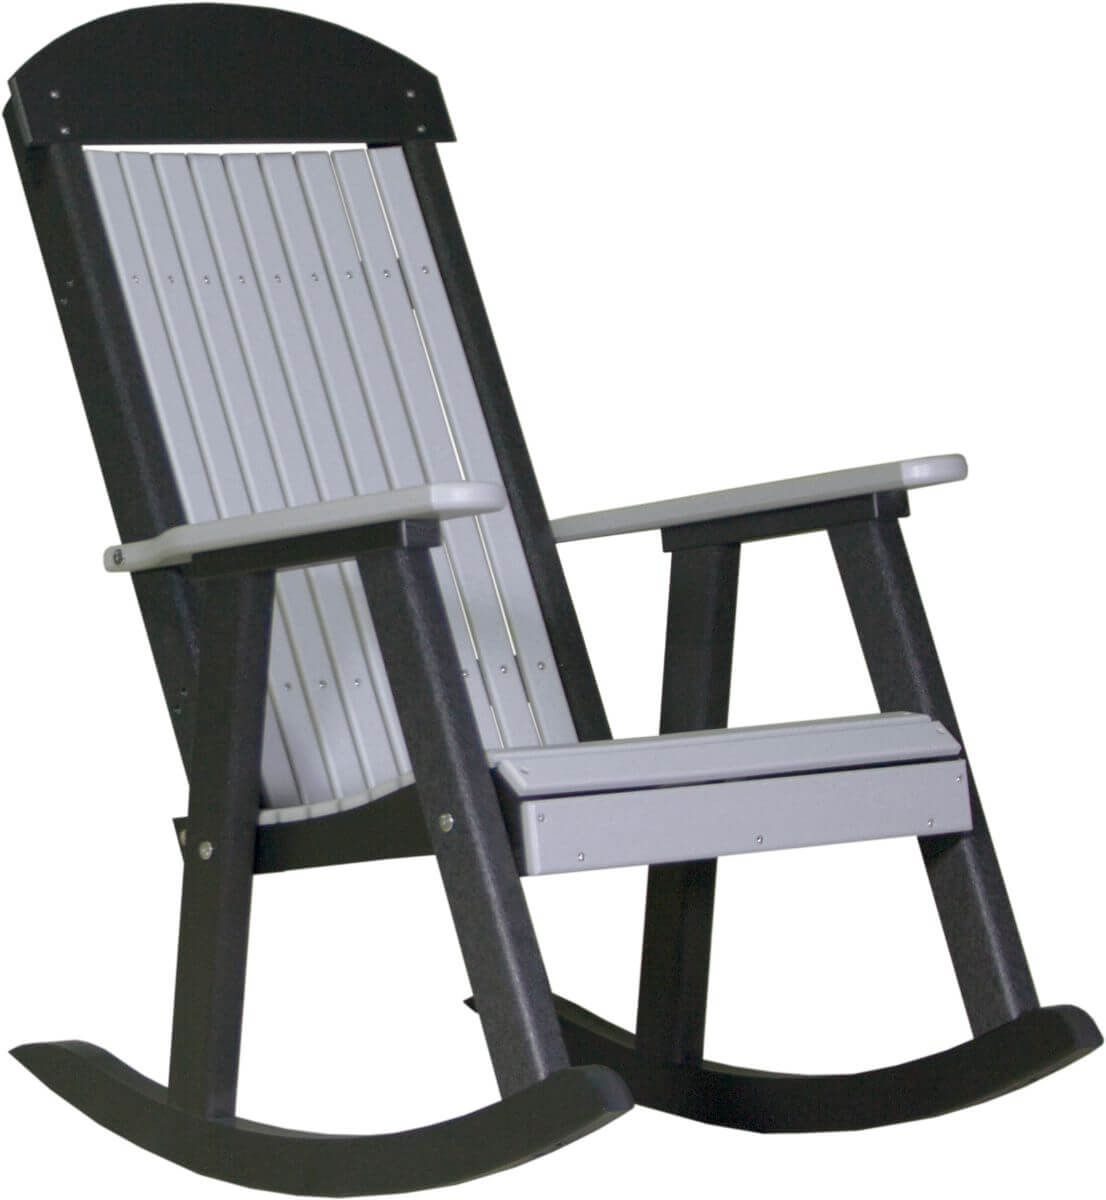 Dove Gray and Black Stockton Porch Rocker